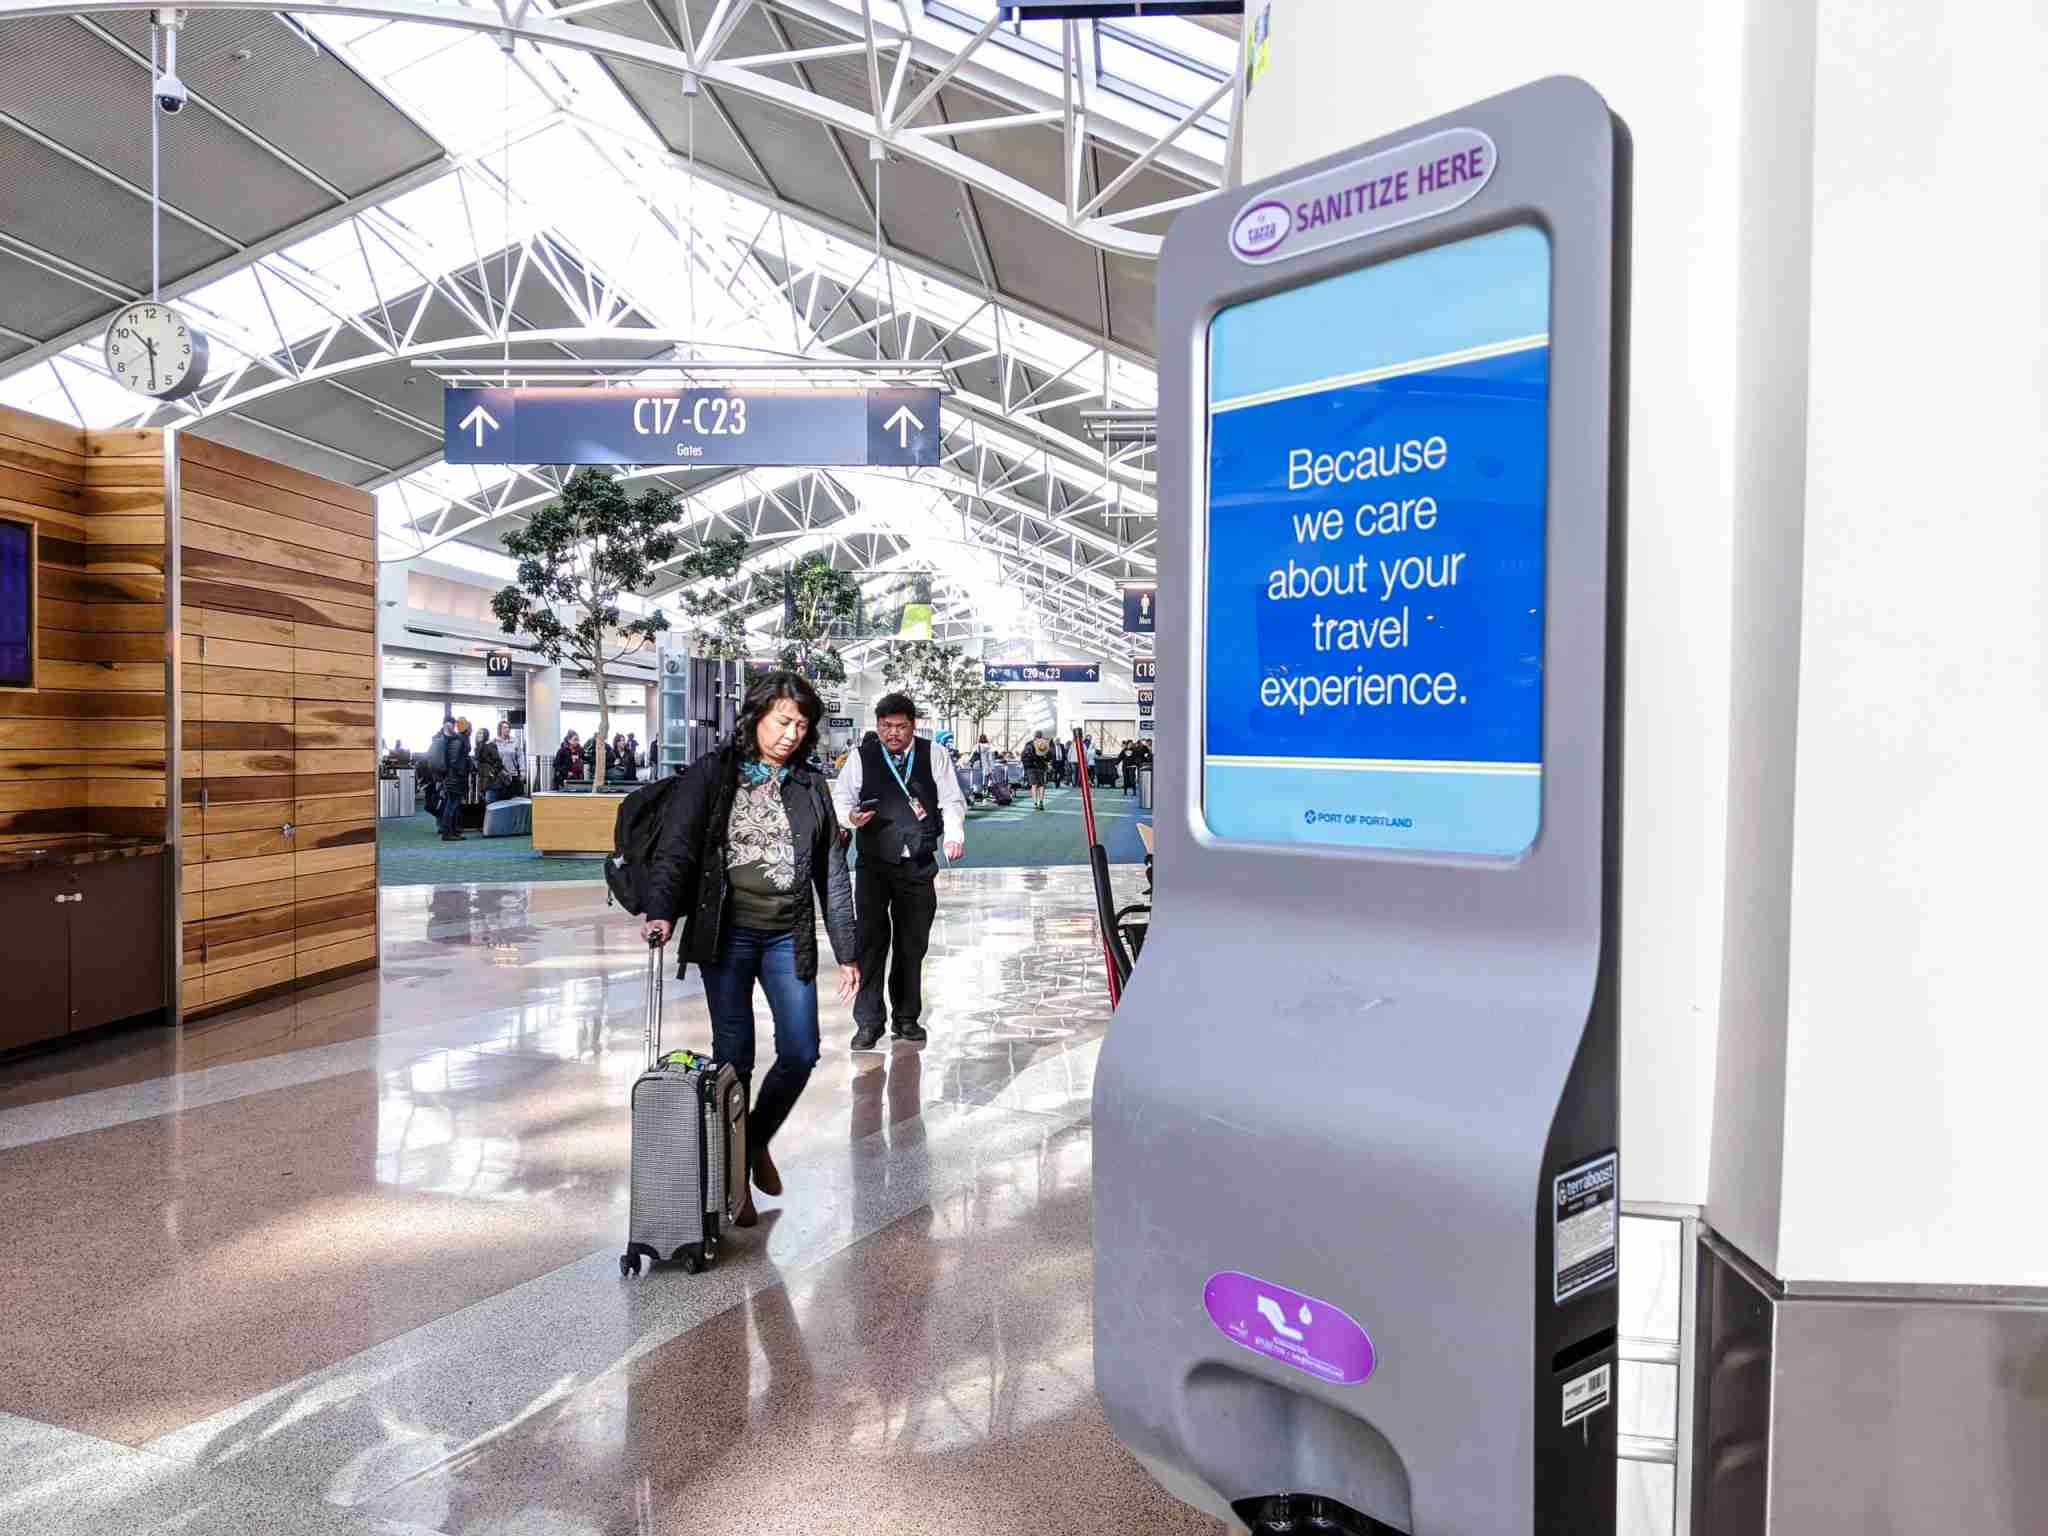 The Portland airport had hand sanitizer dispensers set up everywhere, but half of them were empty and hadn